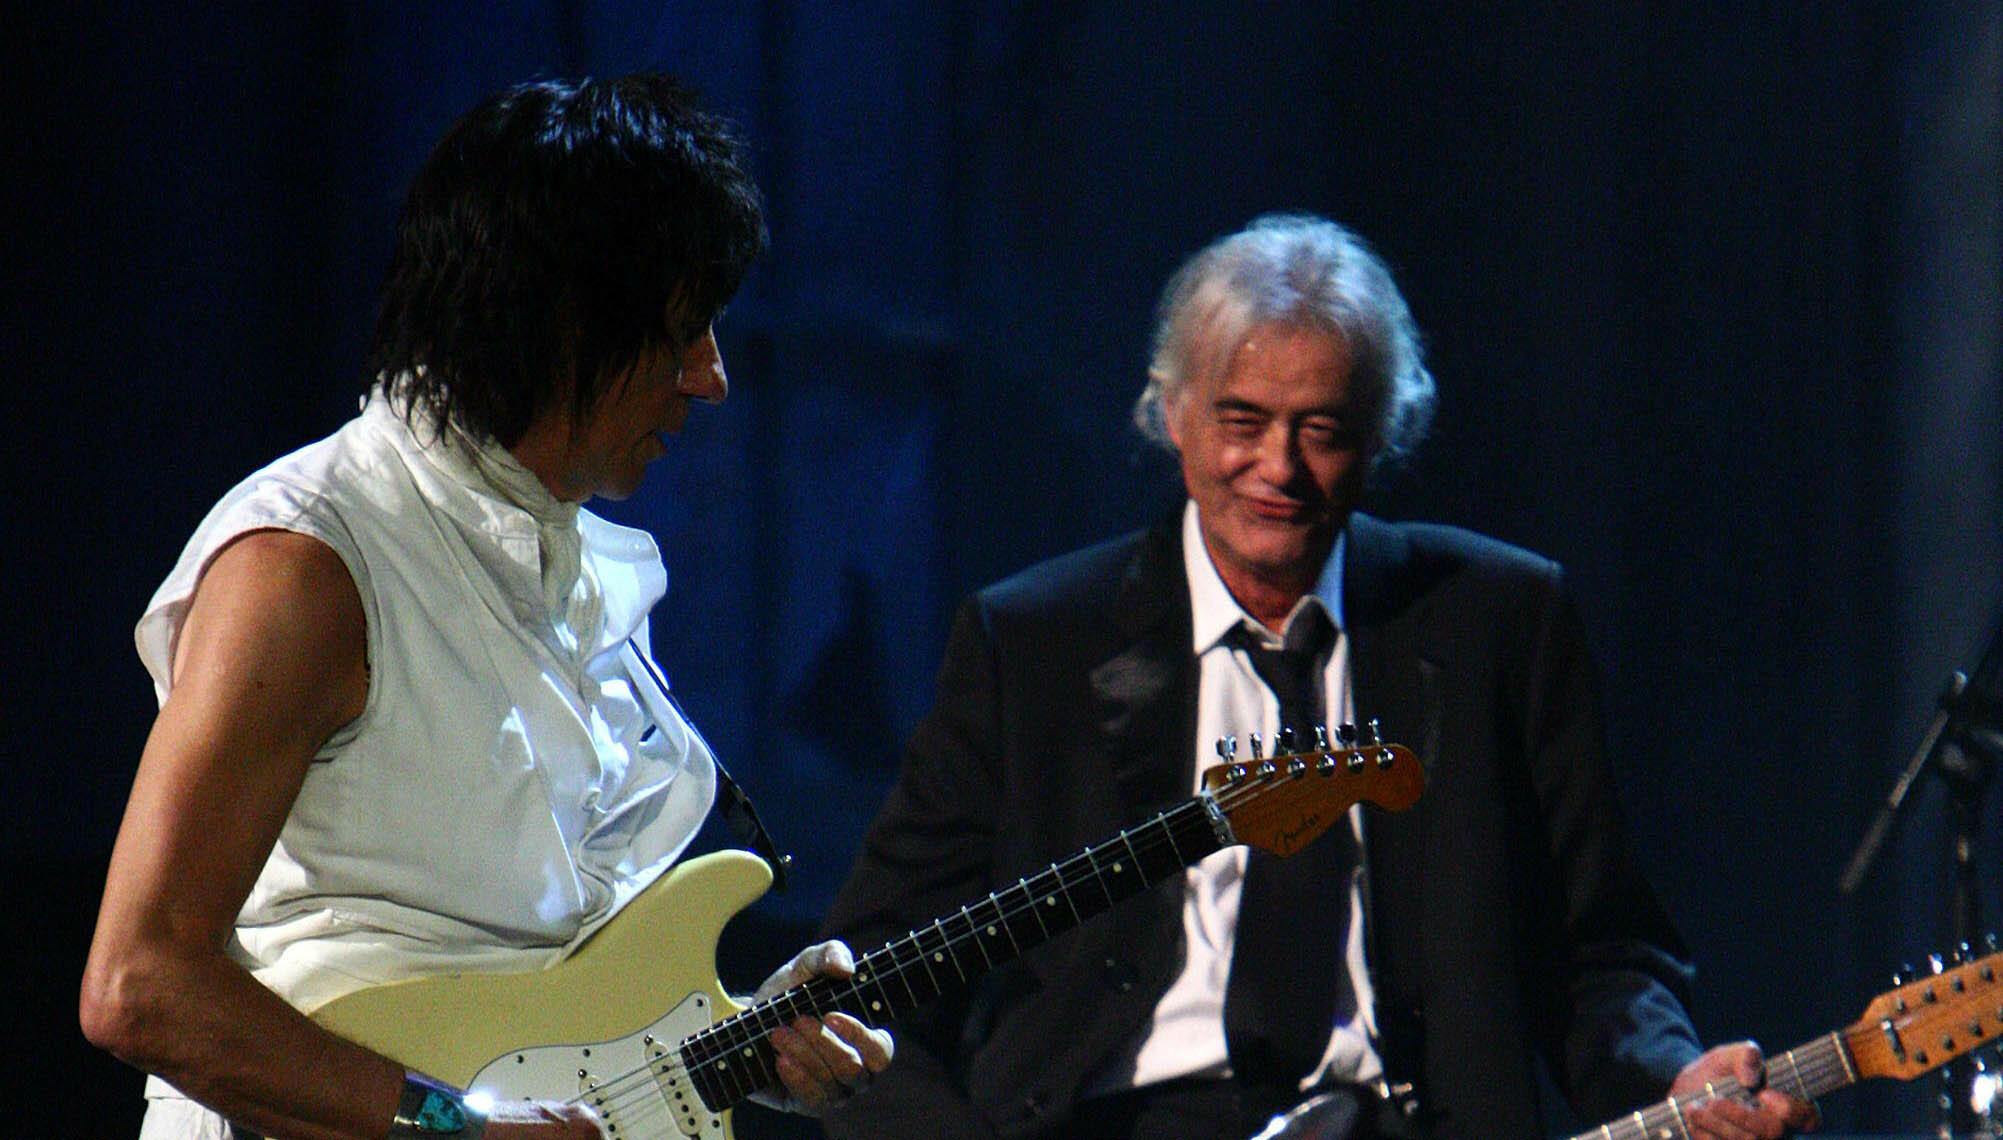 Jimmy Page Says Jeff Beck's Sister Arranged Playdate When They Were Teens